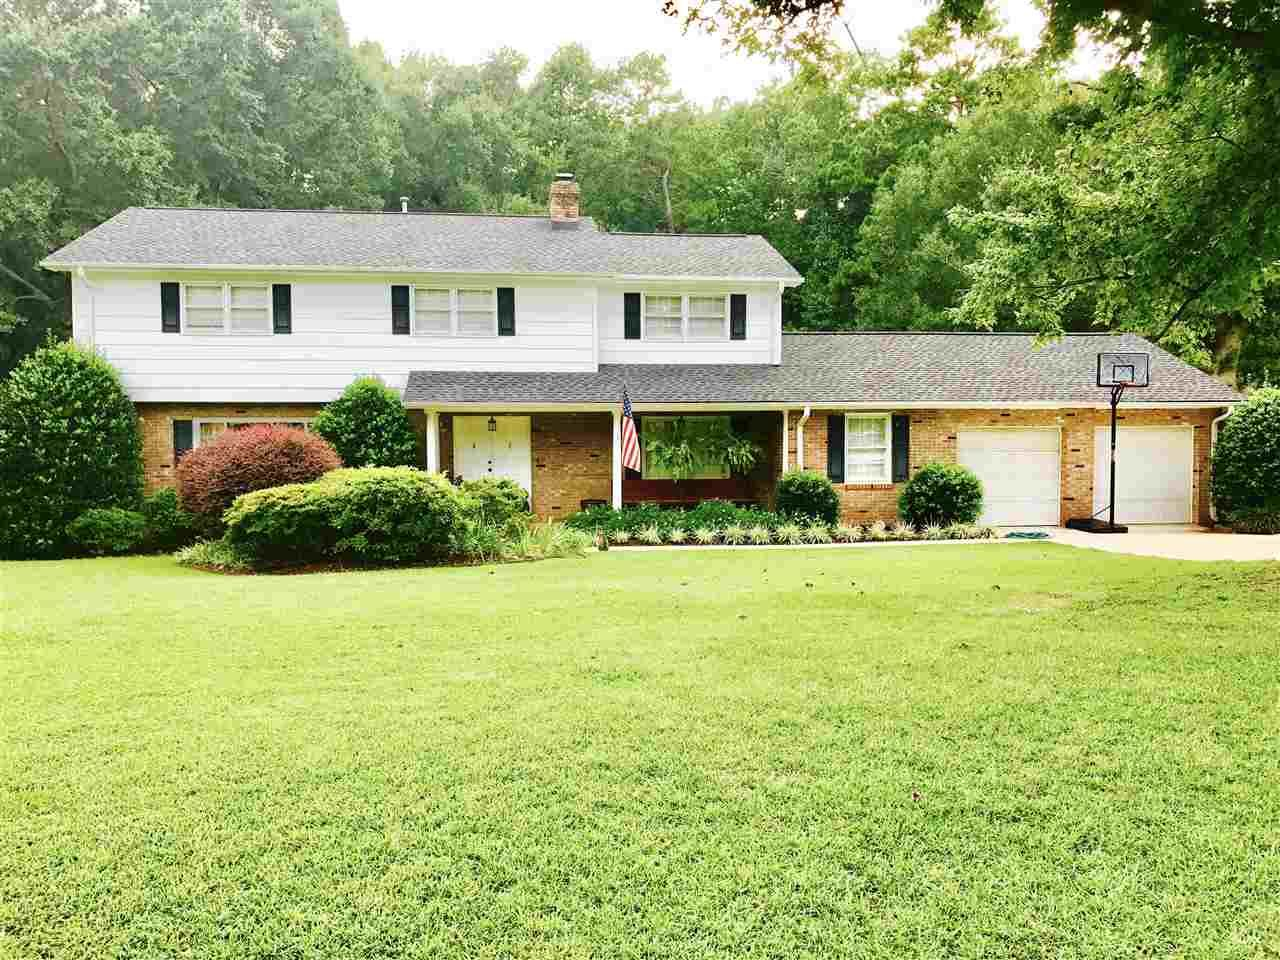 310 Holly Dr, Spartanburg, SC 29301 - Recently Sold | Trulia